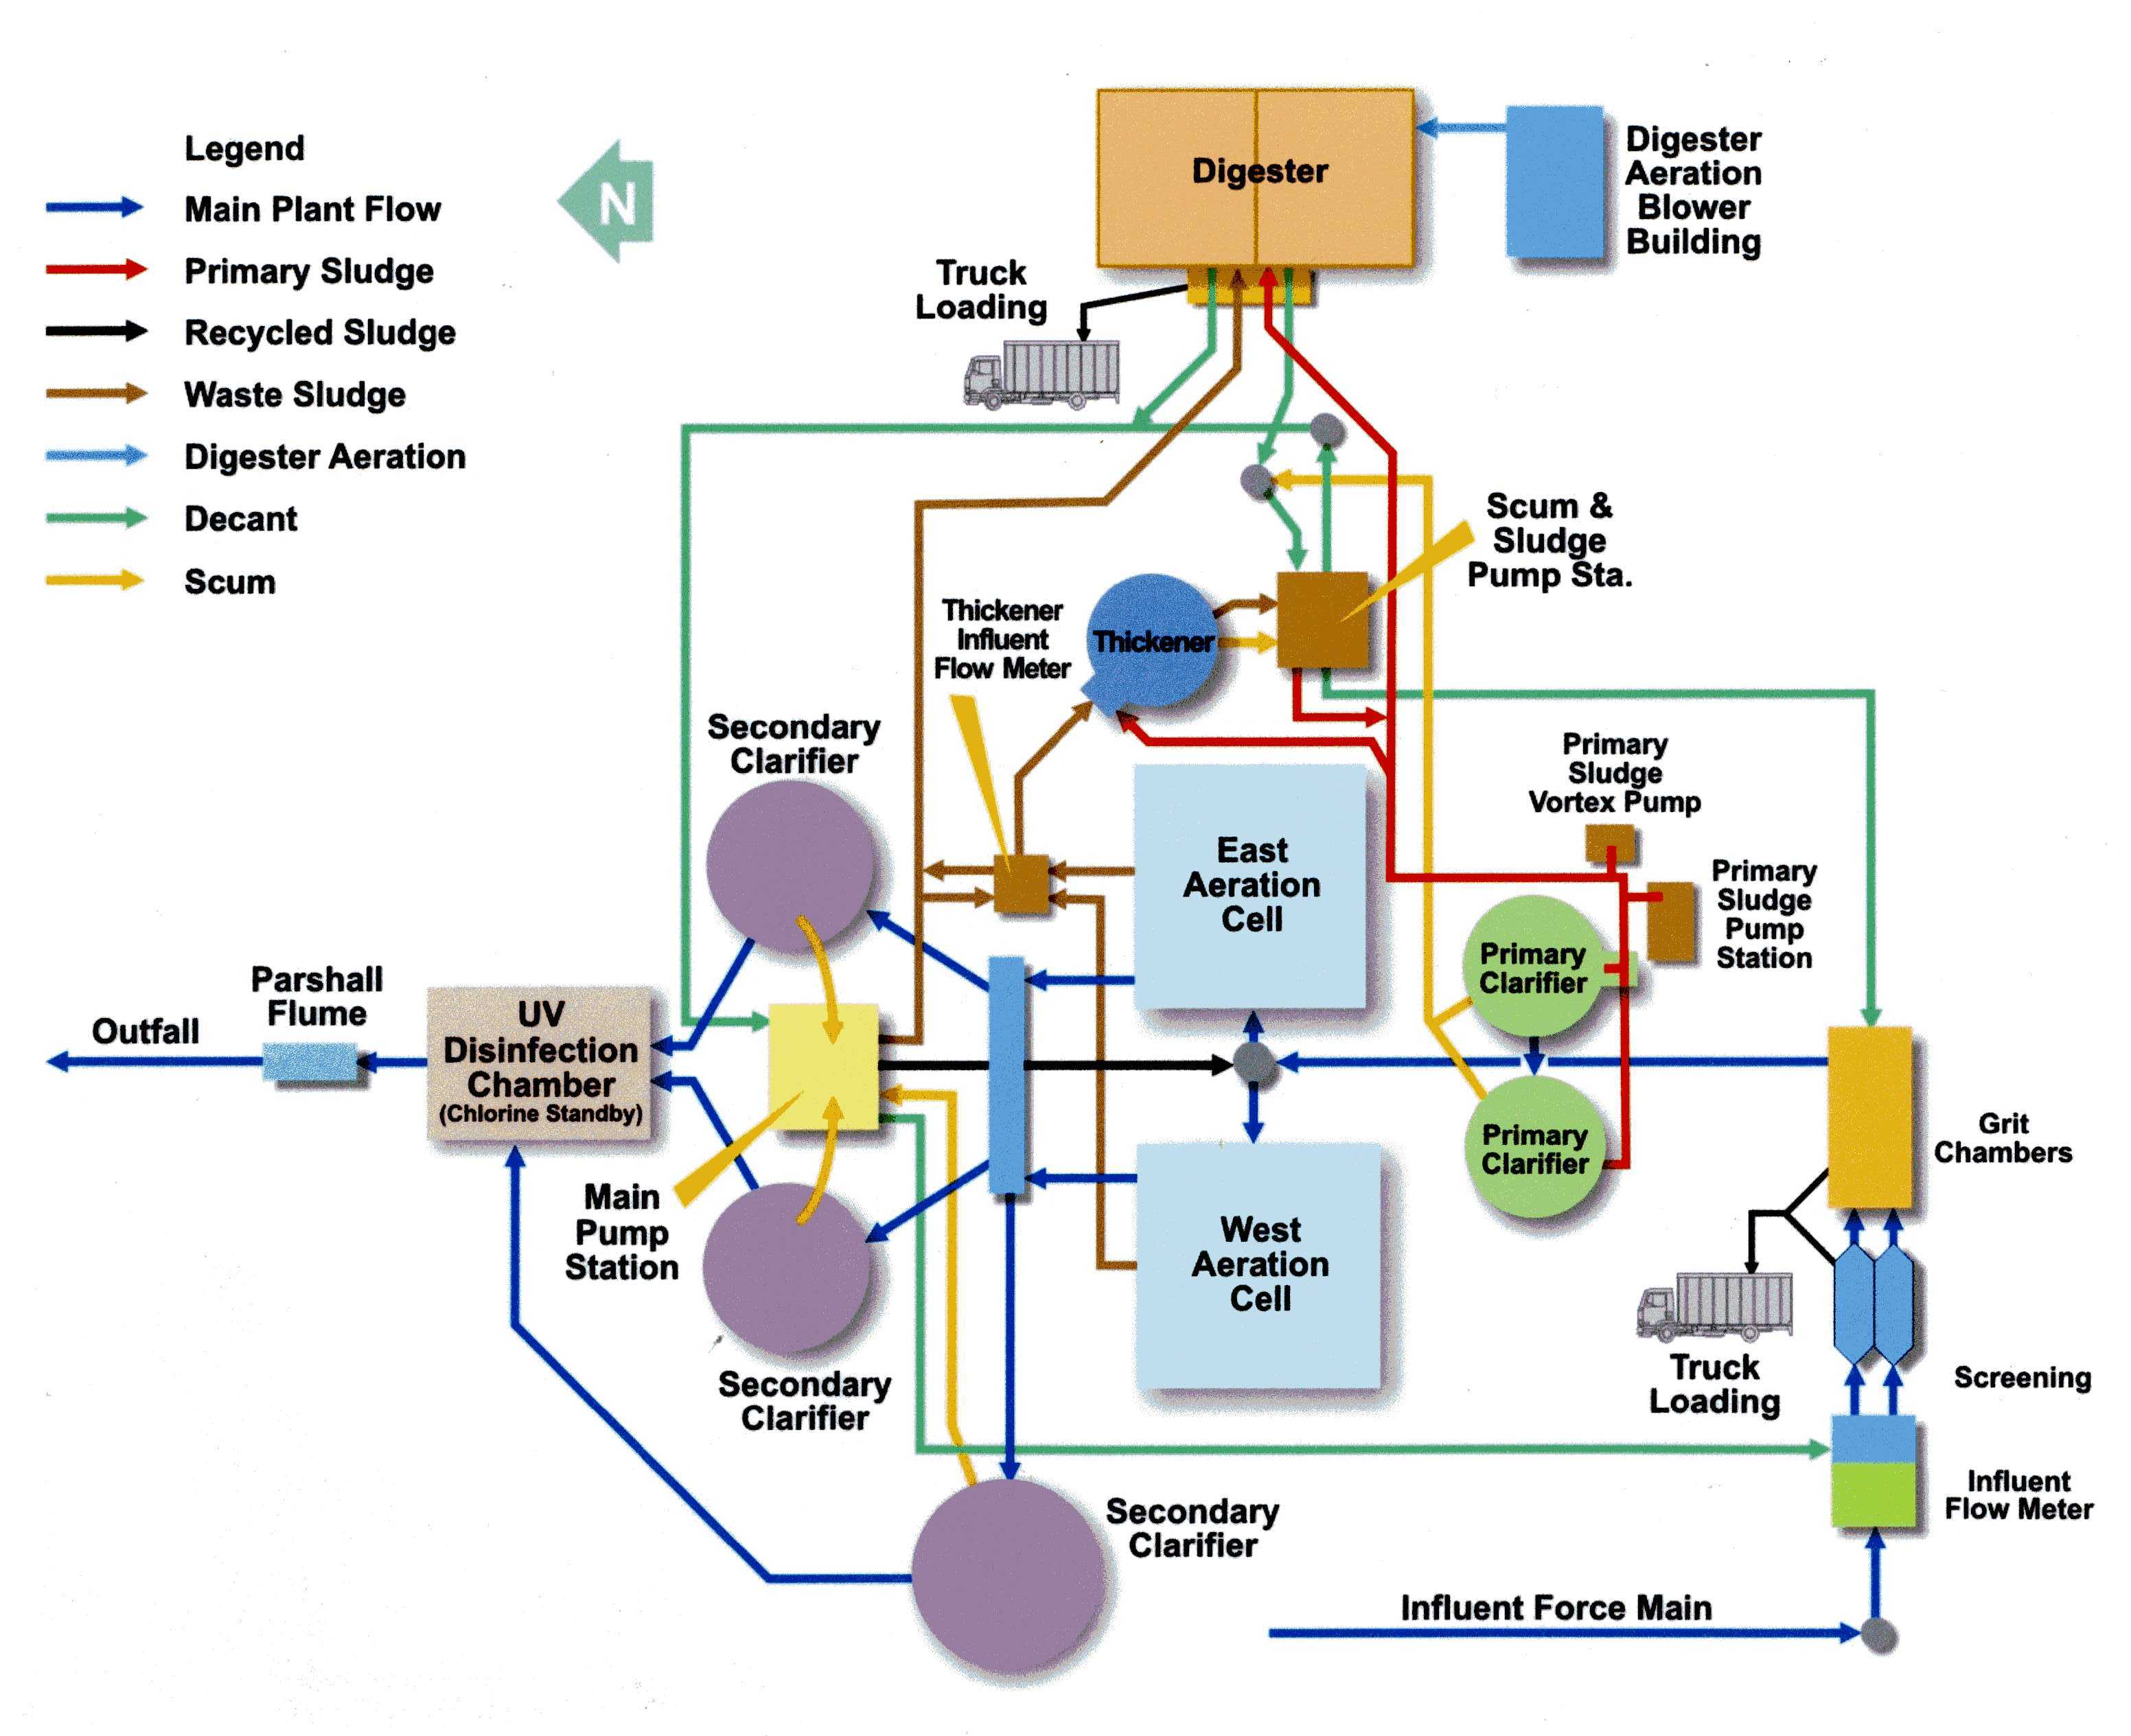 Process Flow Diagram For Wastewater Treatment Plant Wiring Library Wwtp Birch Bay System